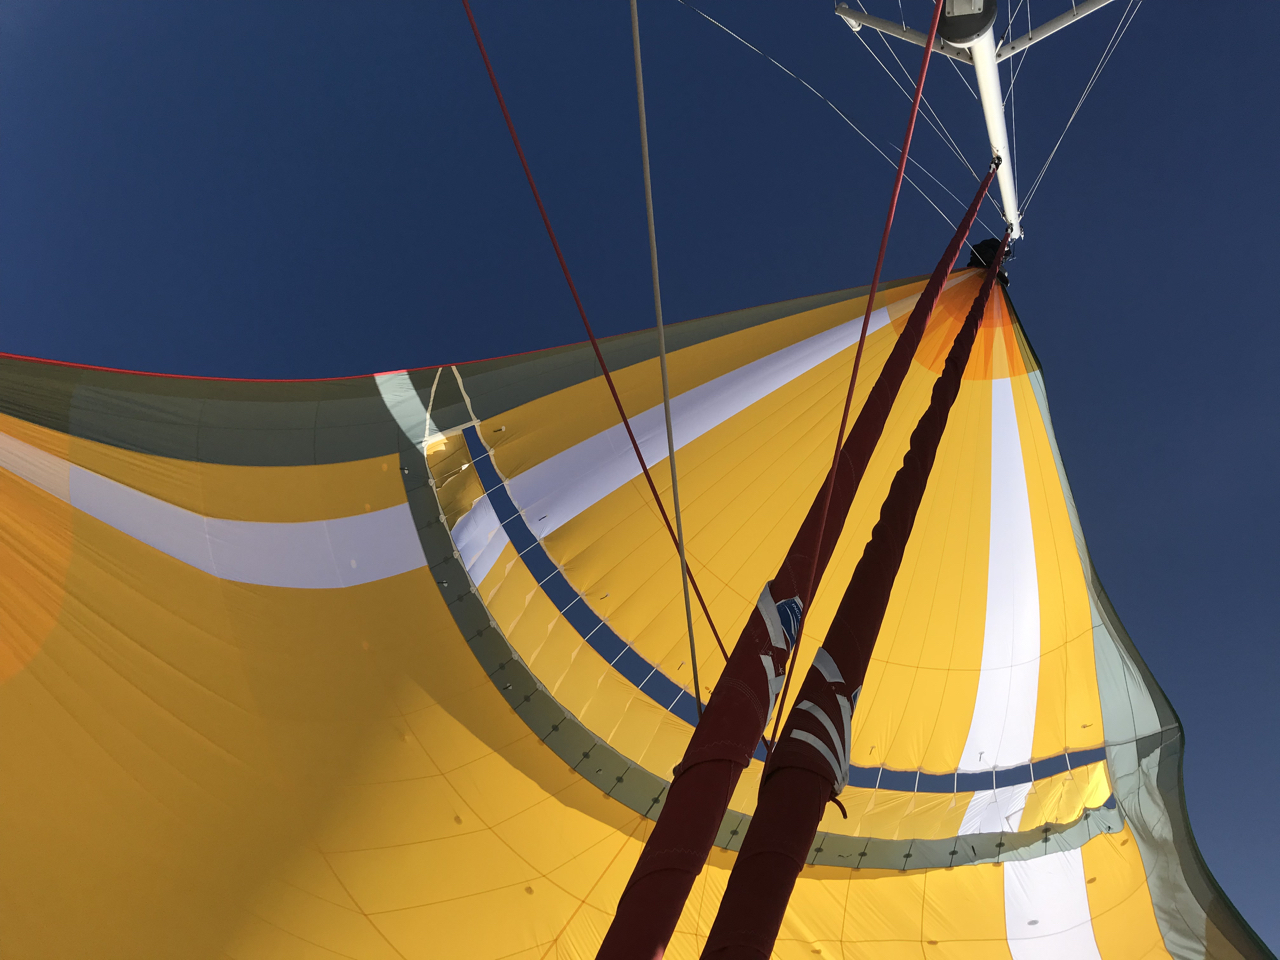 Sailing with a Parasailor on a NEEL 51